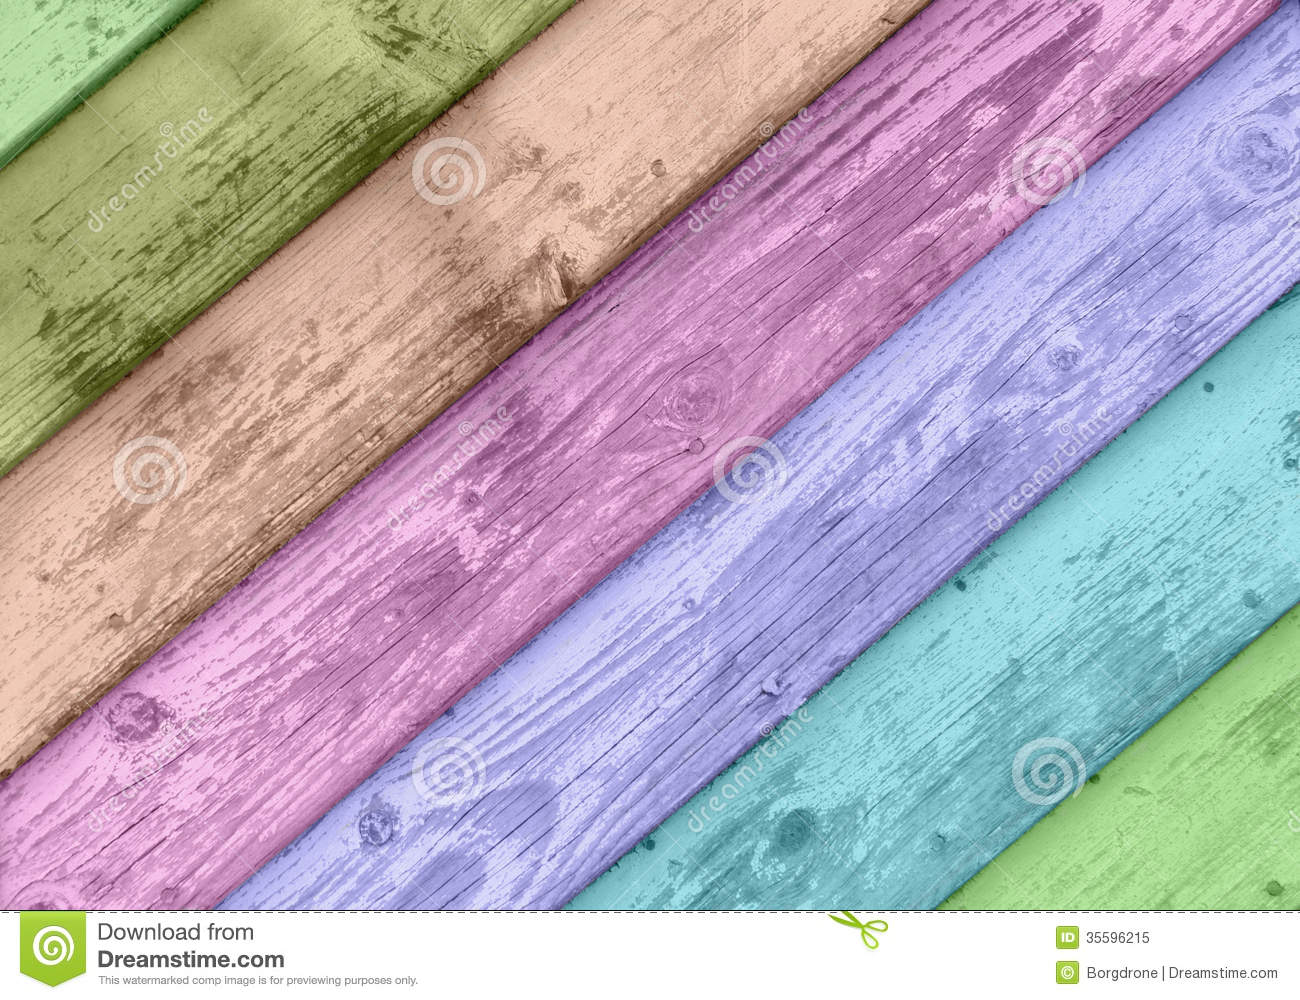 Amazing Free Colorful Grunge Textures Download: Abstract Grunge Colorful Wood Texture Stock Image